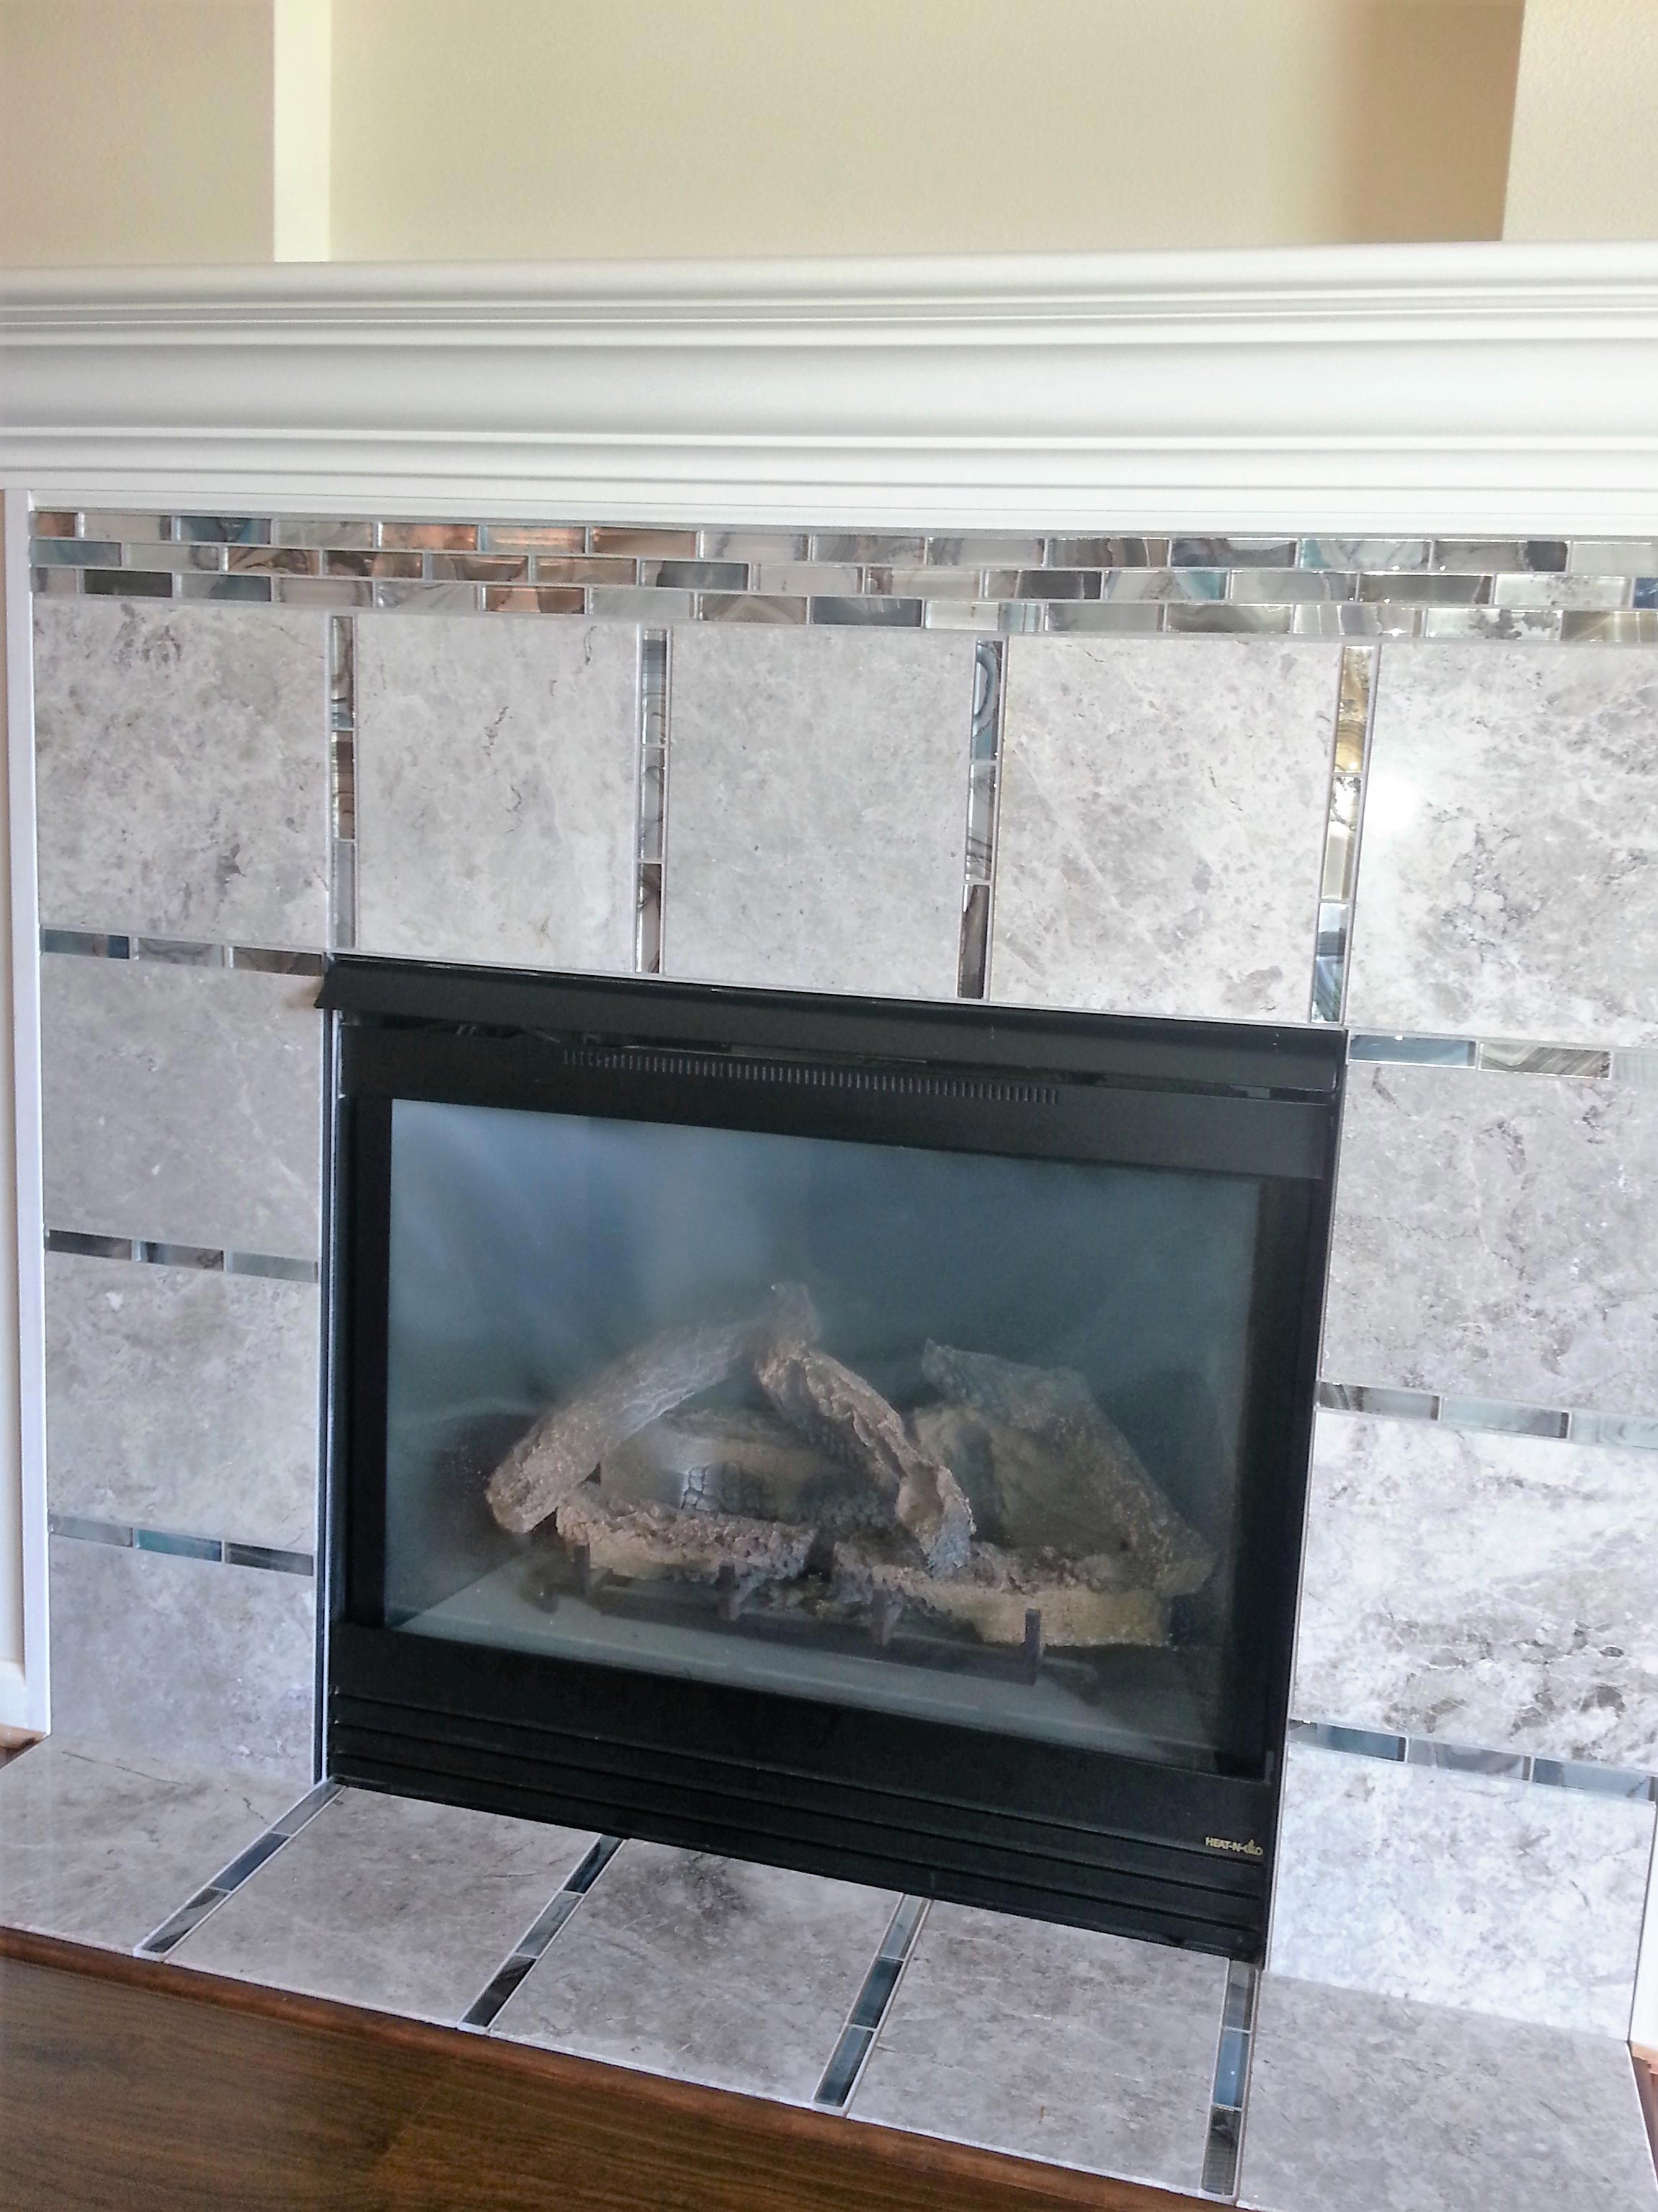 TN Miller Remodeling can create and renovate your fireplace in a variety of materials to match the style of your home in the greater Hood Canal area.